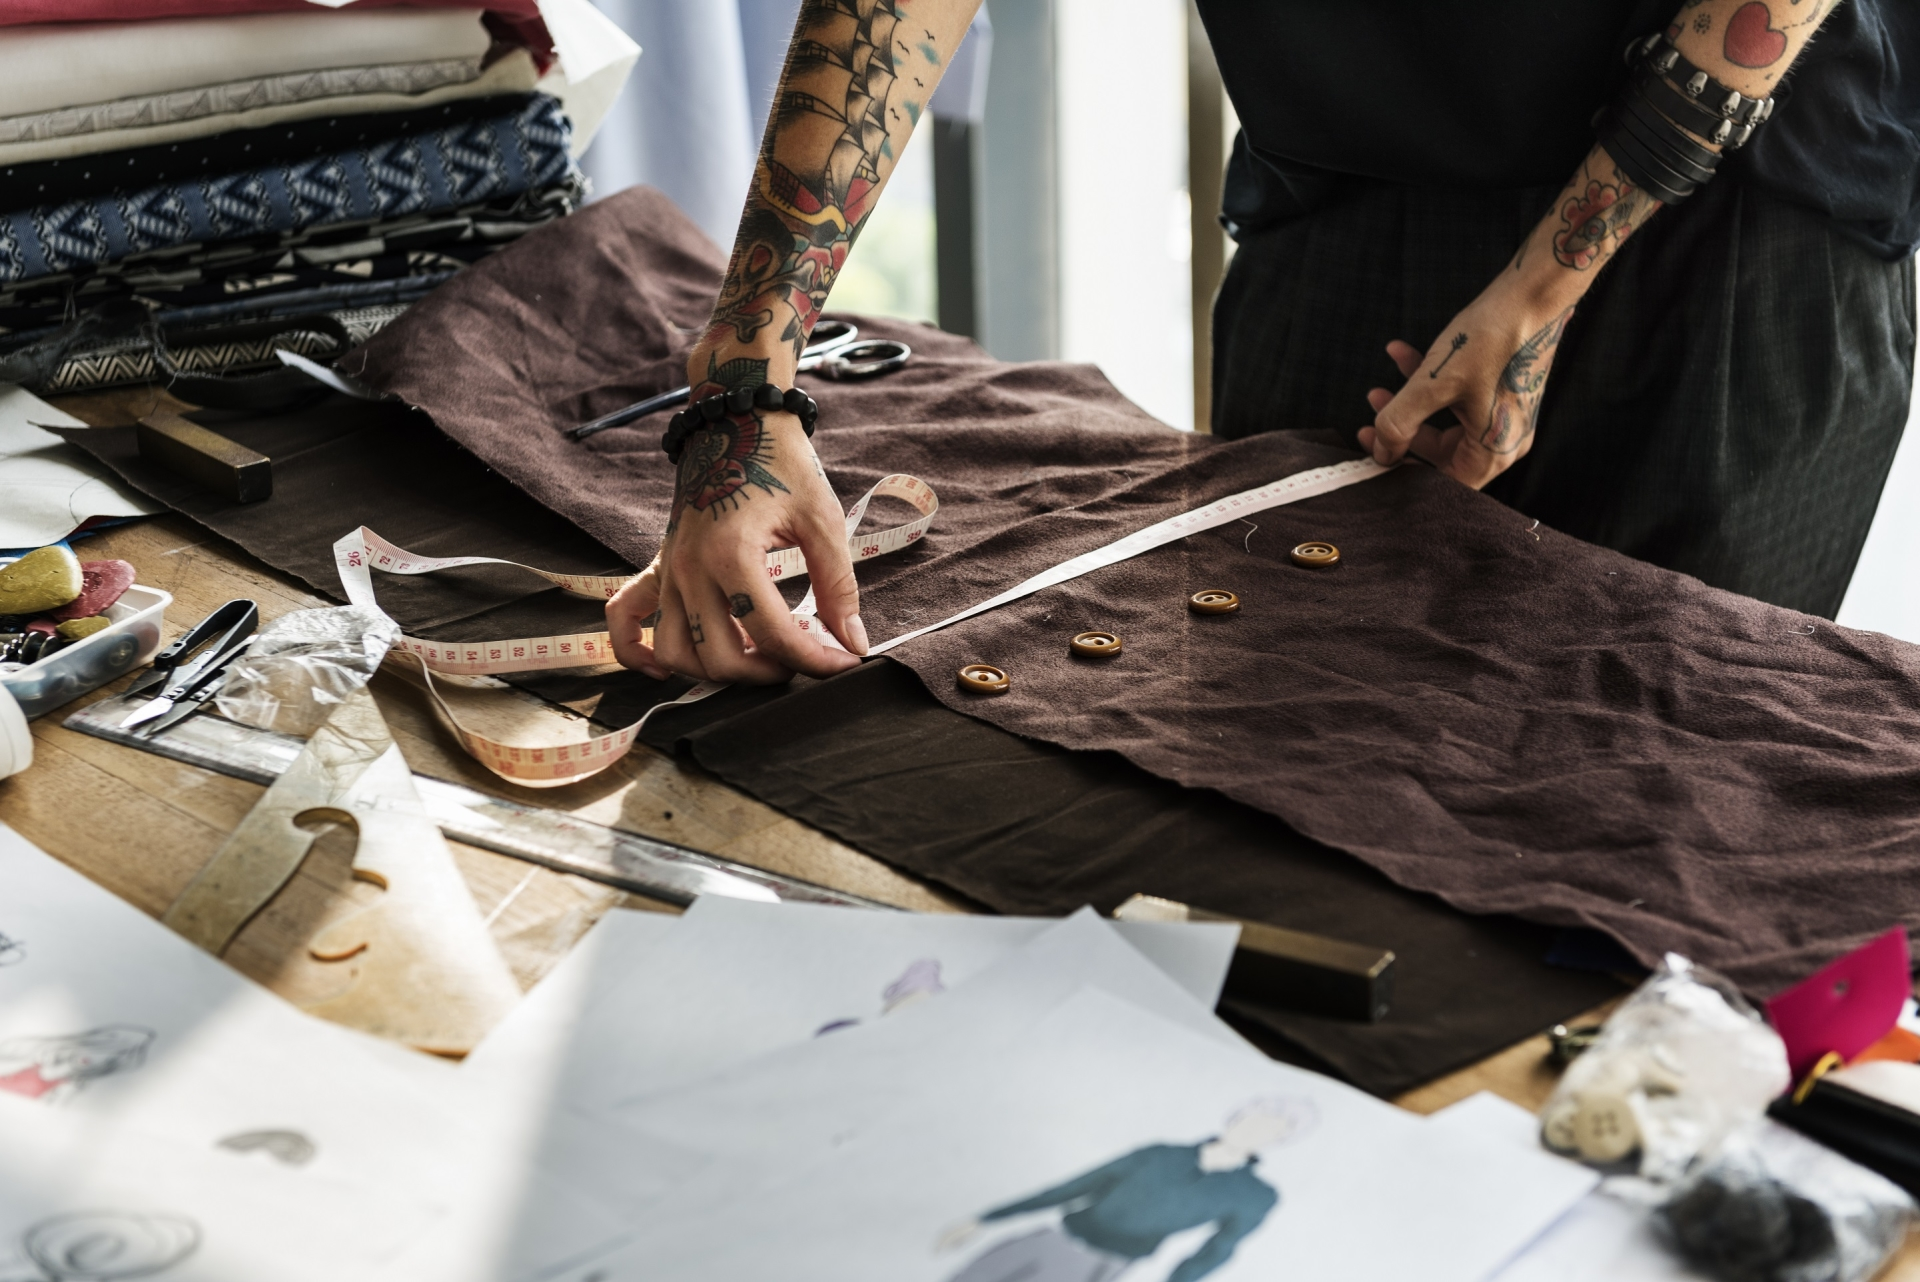 What is 'Upcycling' In Terms Of Fashion